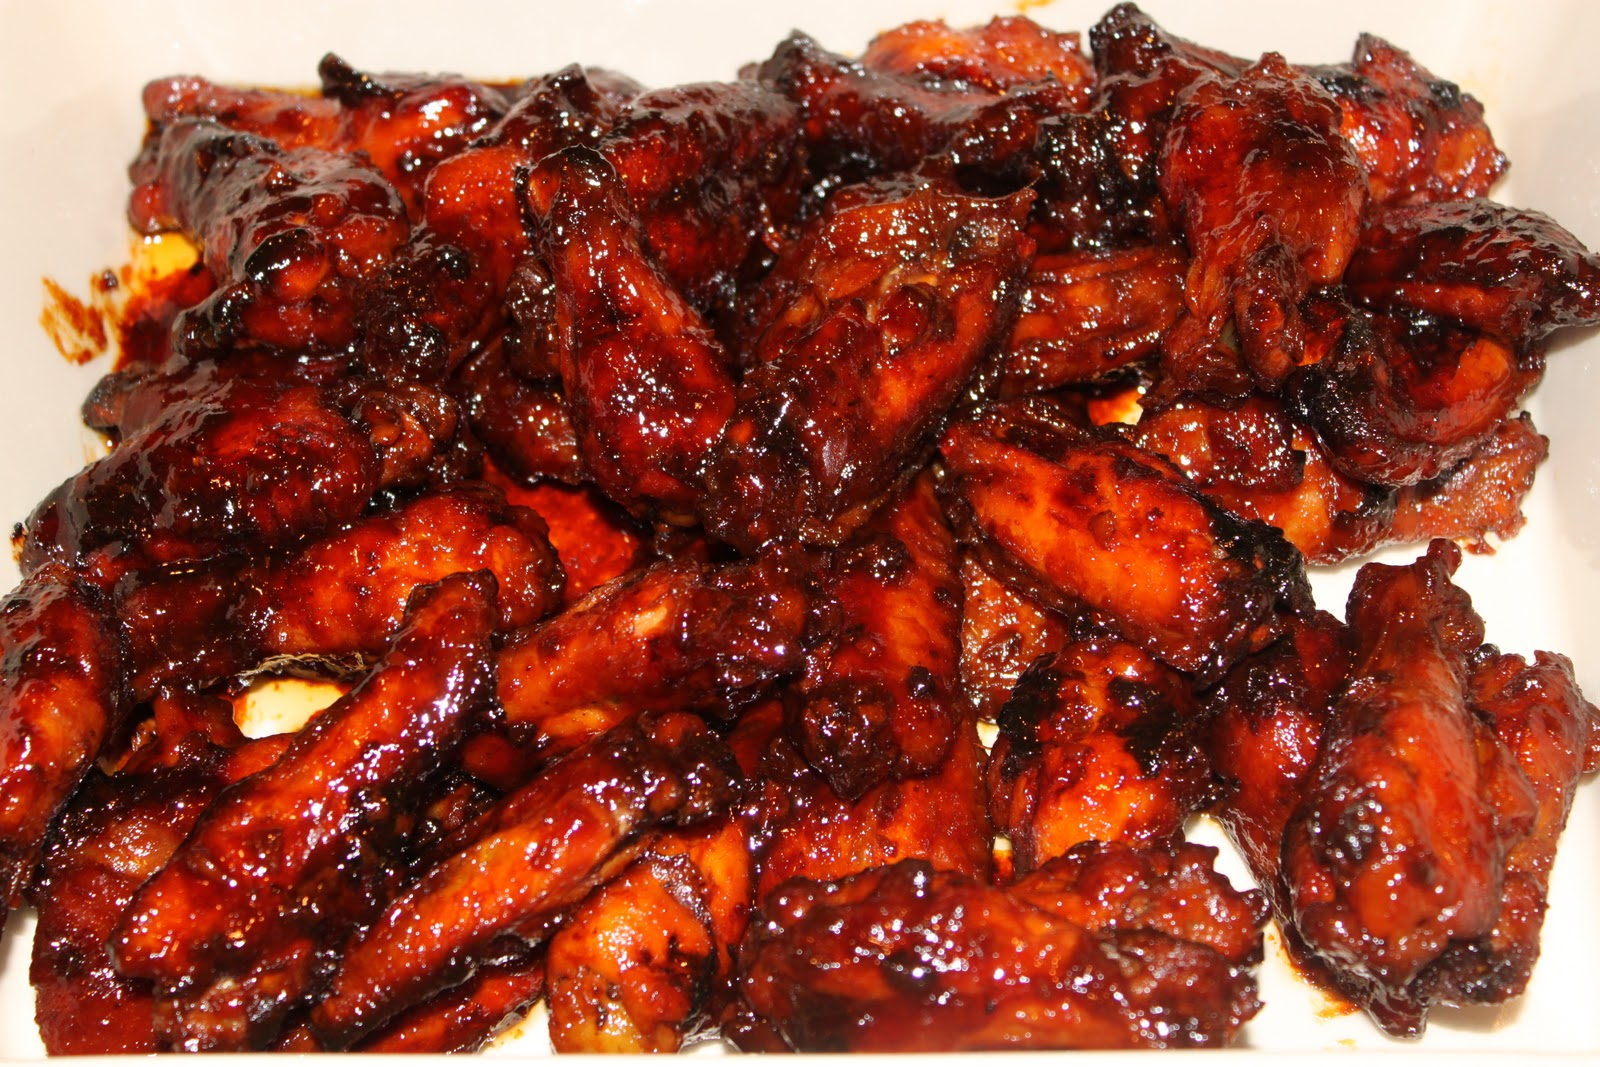 Download image Honey Baked Chicken Wings PC, Android, iPhone and iPad ...